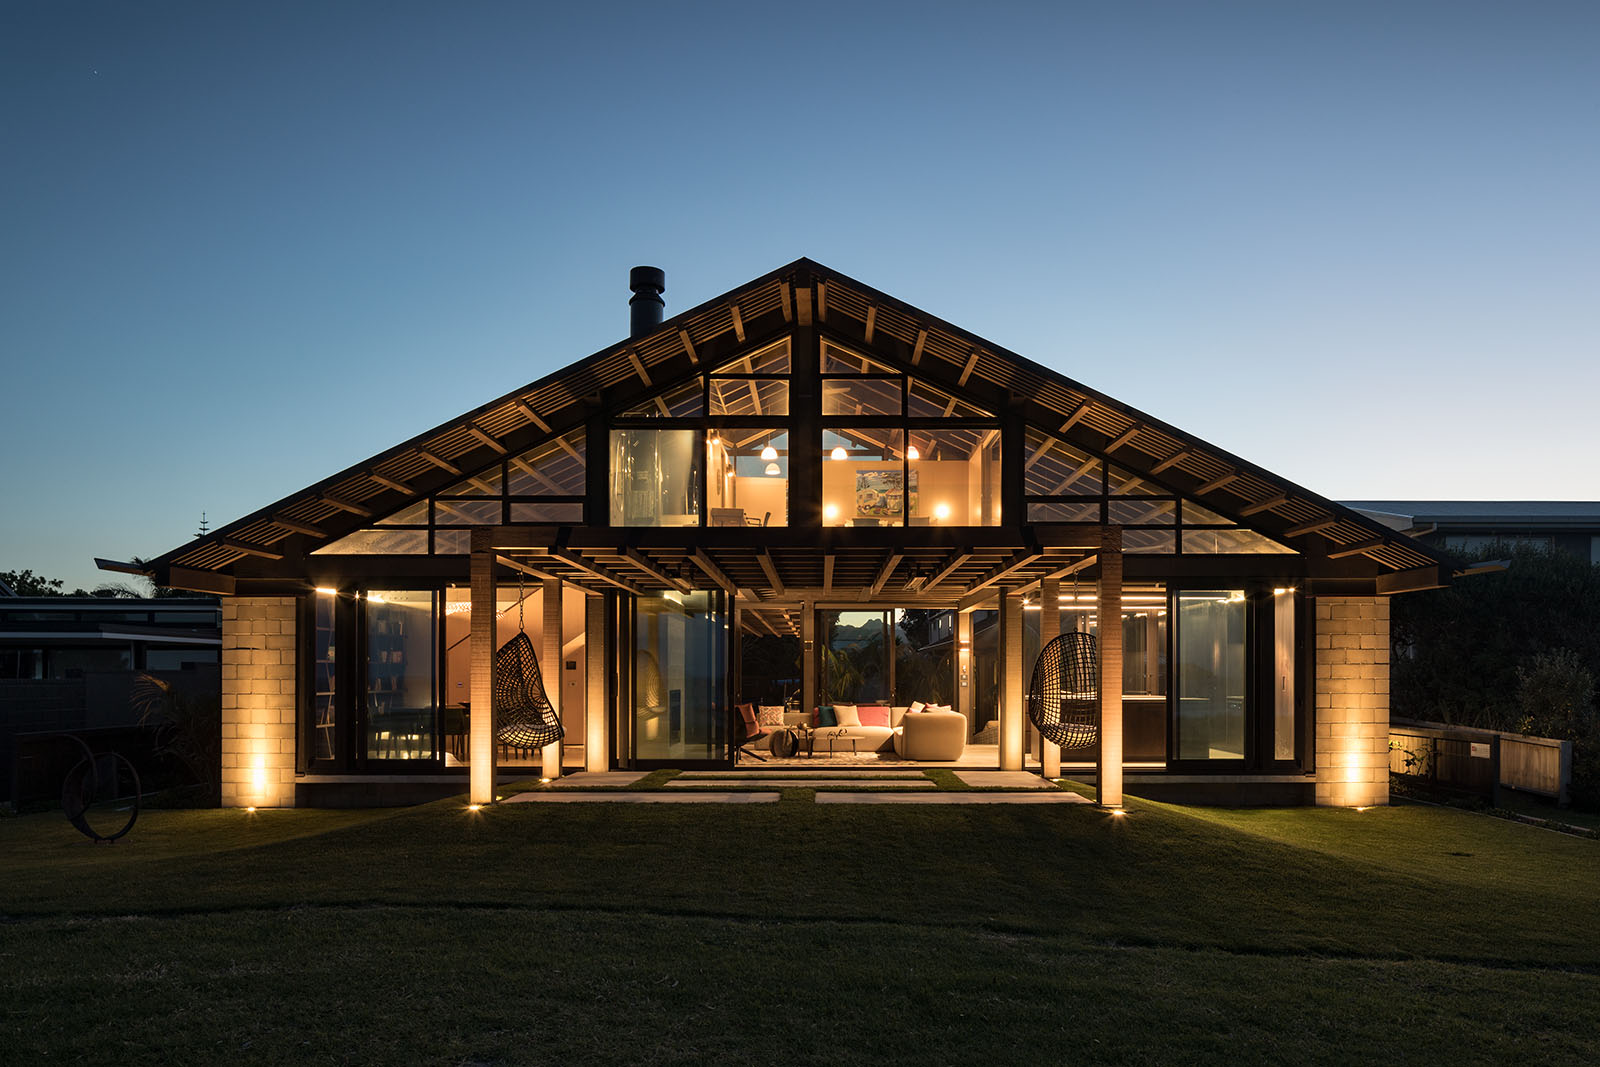 """<p><strong>Pauanui Beach House</strong>Peddlethorp<a href=""""https://www.peddlethorp.co.nz/project/pauanui-beach-house/"""" target=""""_blank""""> More →</a></p>"""